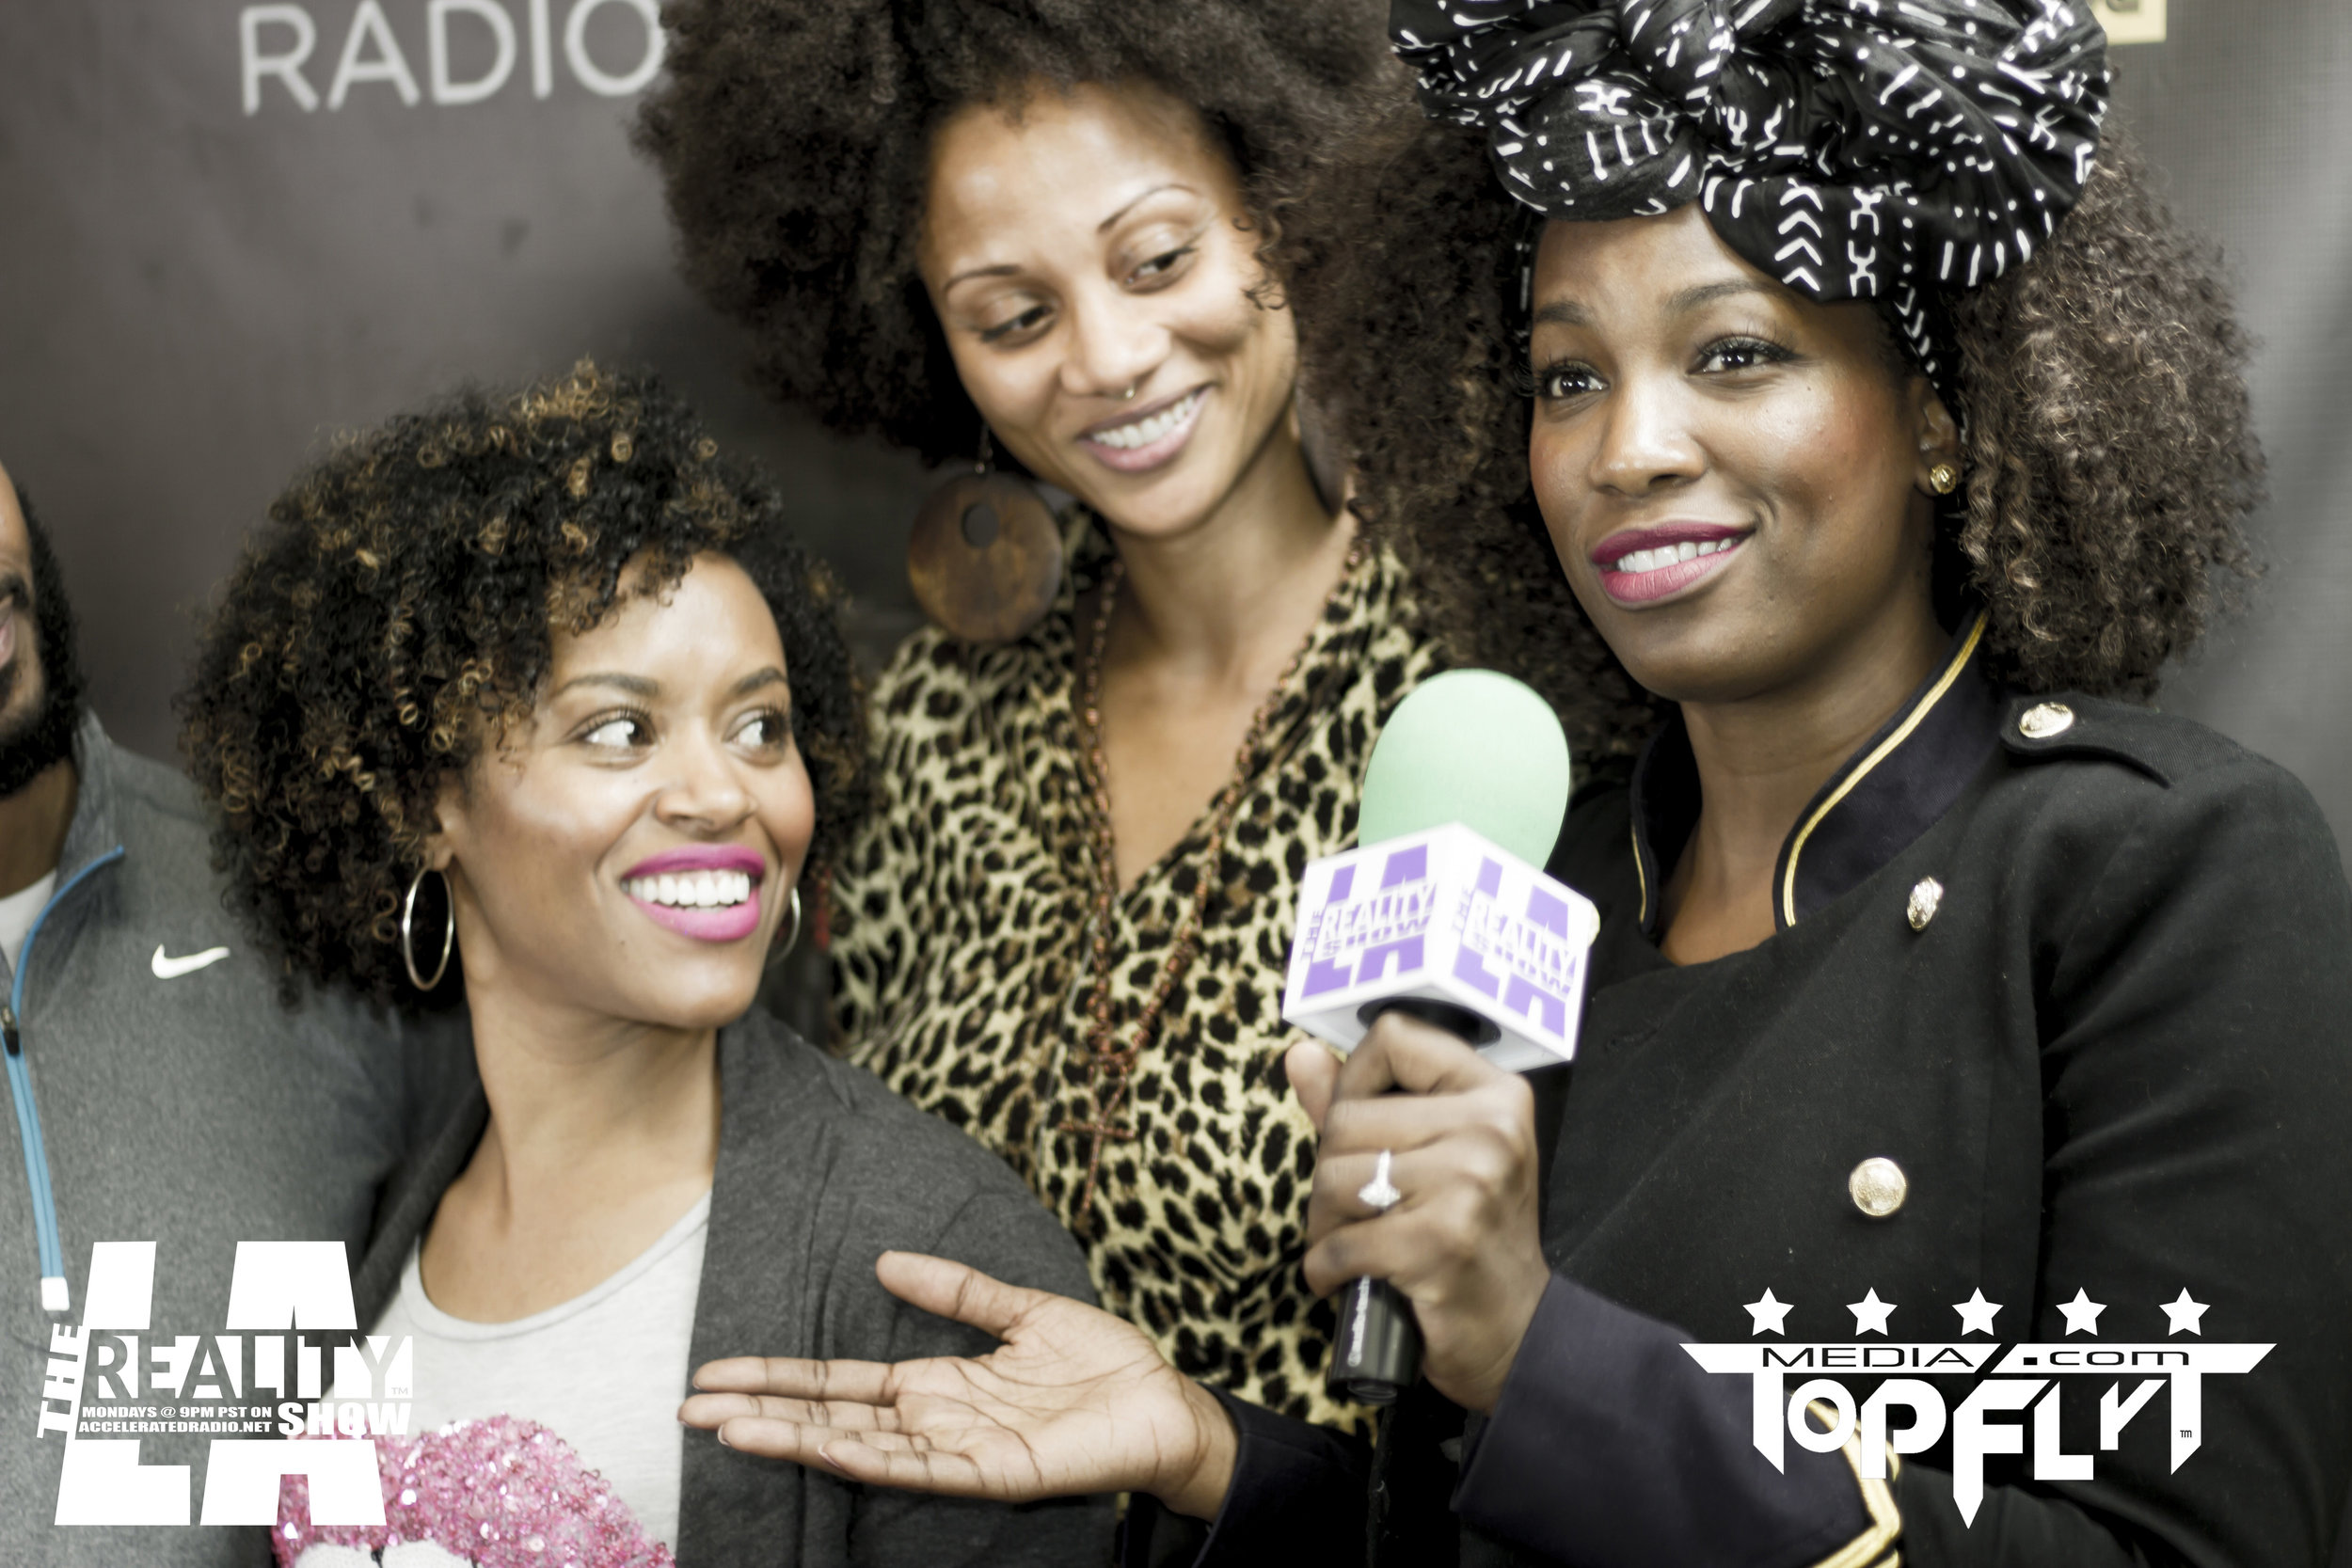 The Reality Show LA ft. Cast of FunnyMarriedStuff And Raquel Harris - 01-16-17_8.jpg